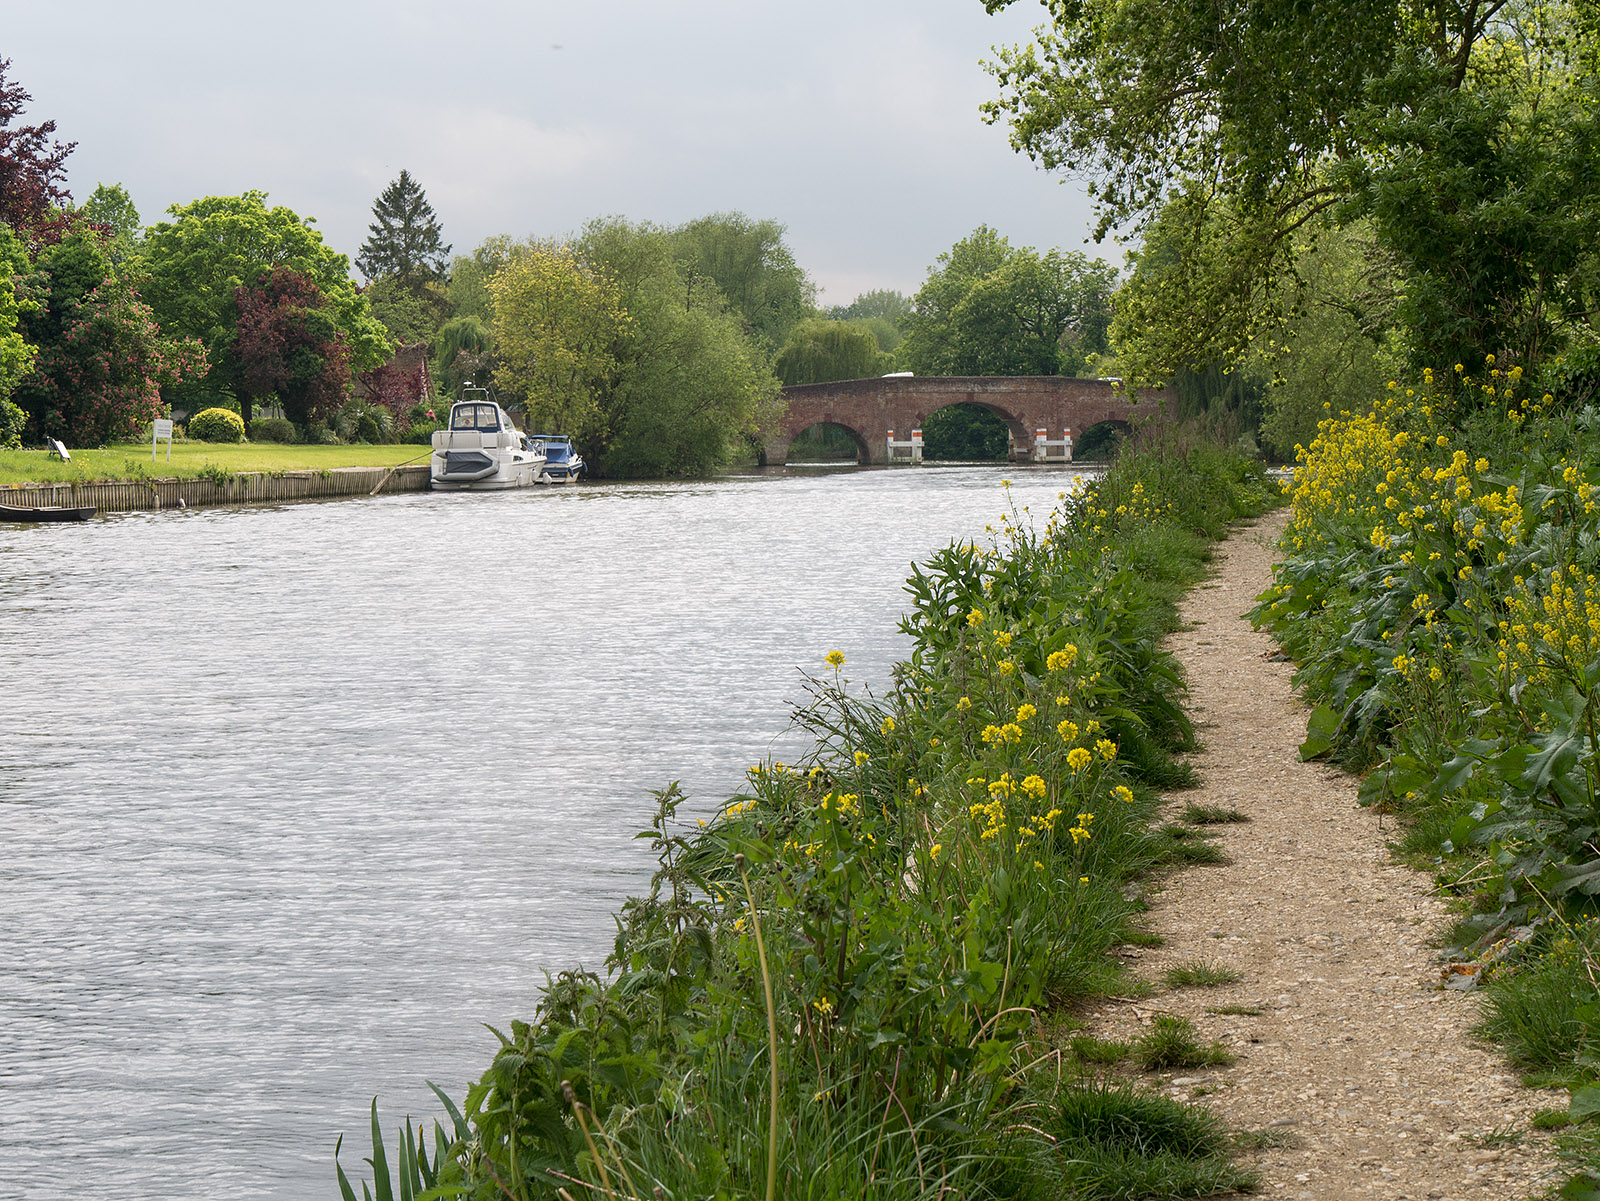 Approaching Sonning bridge